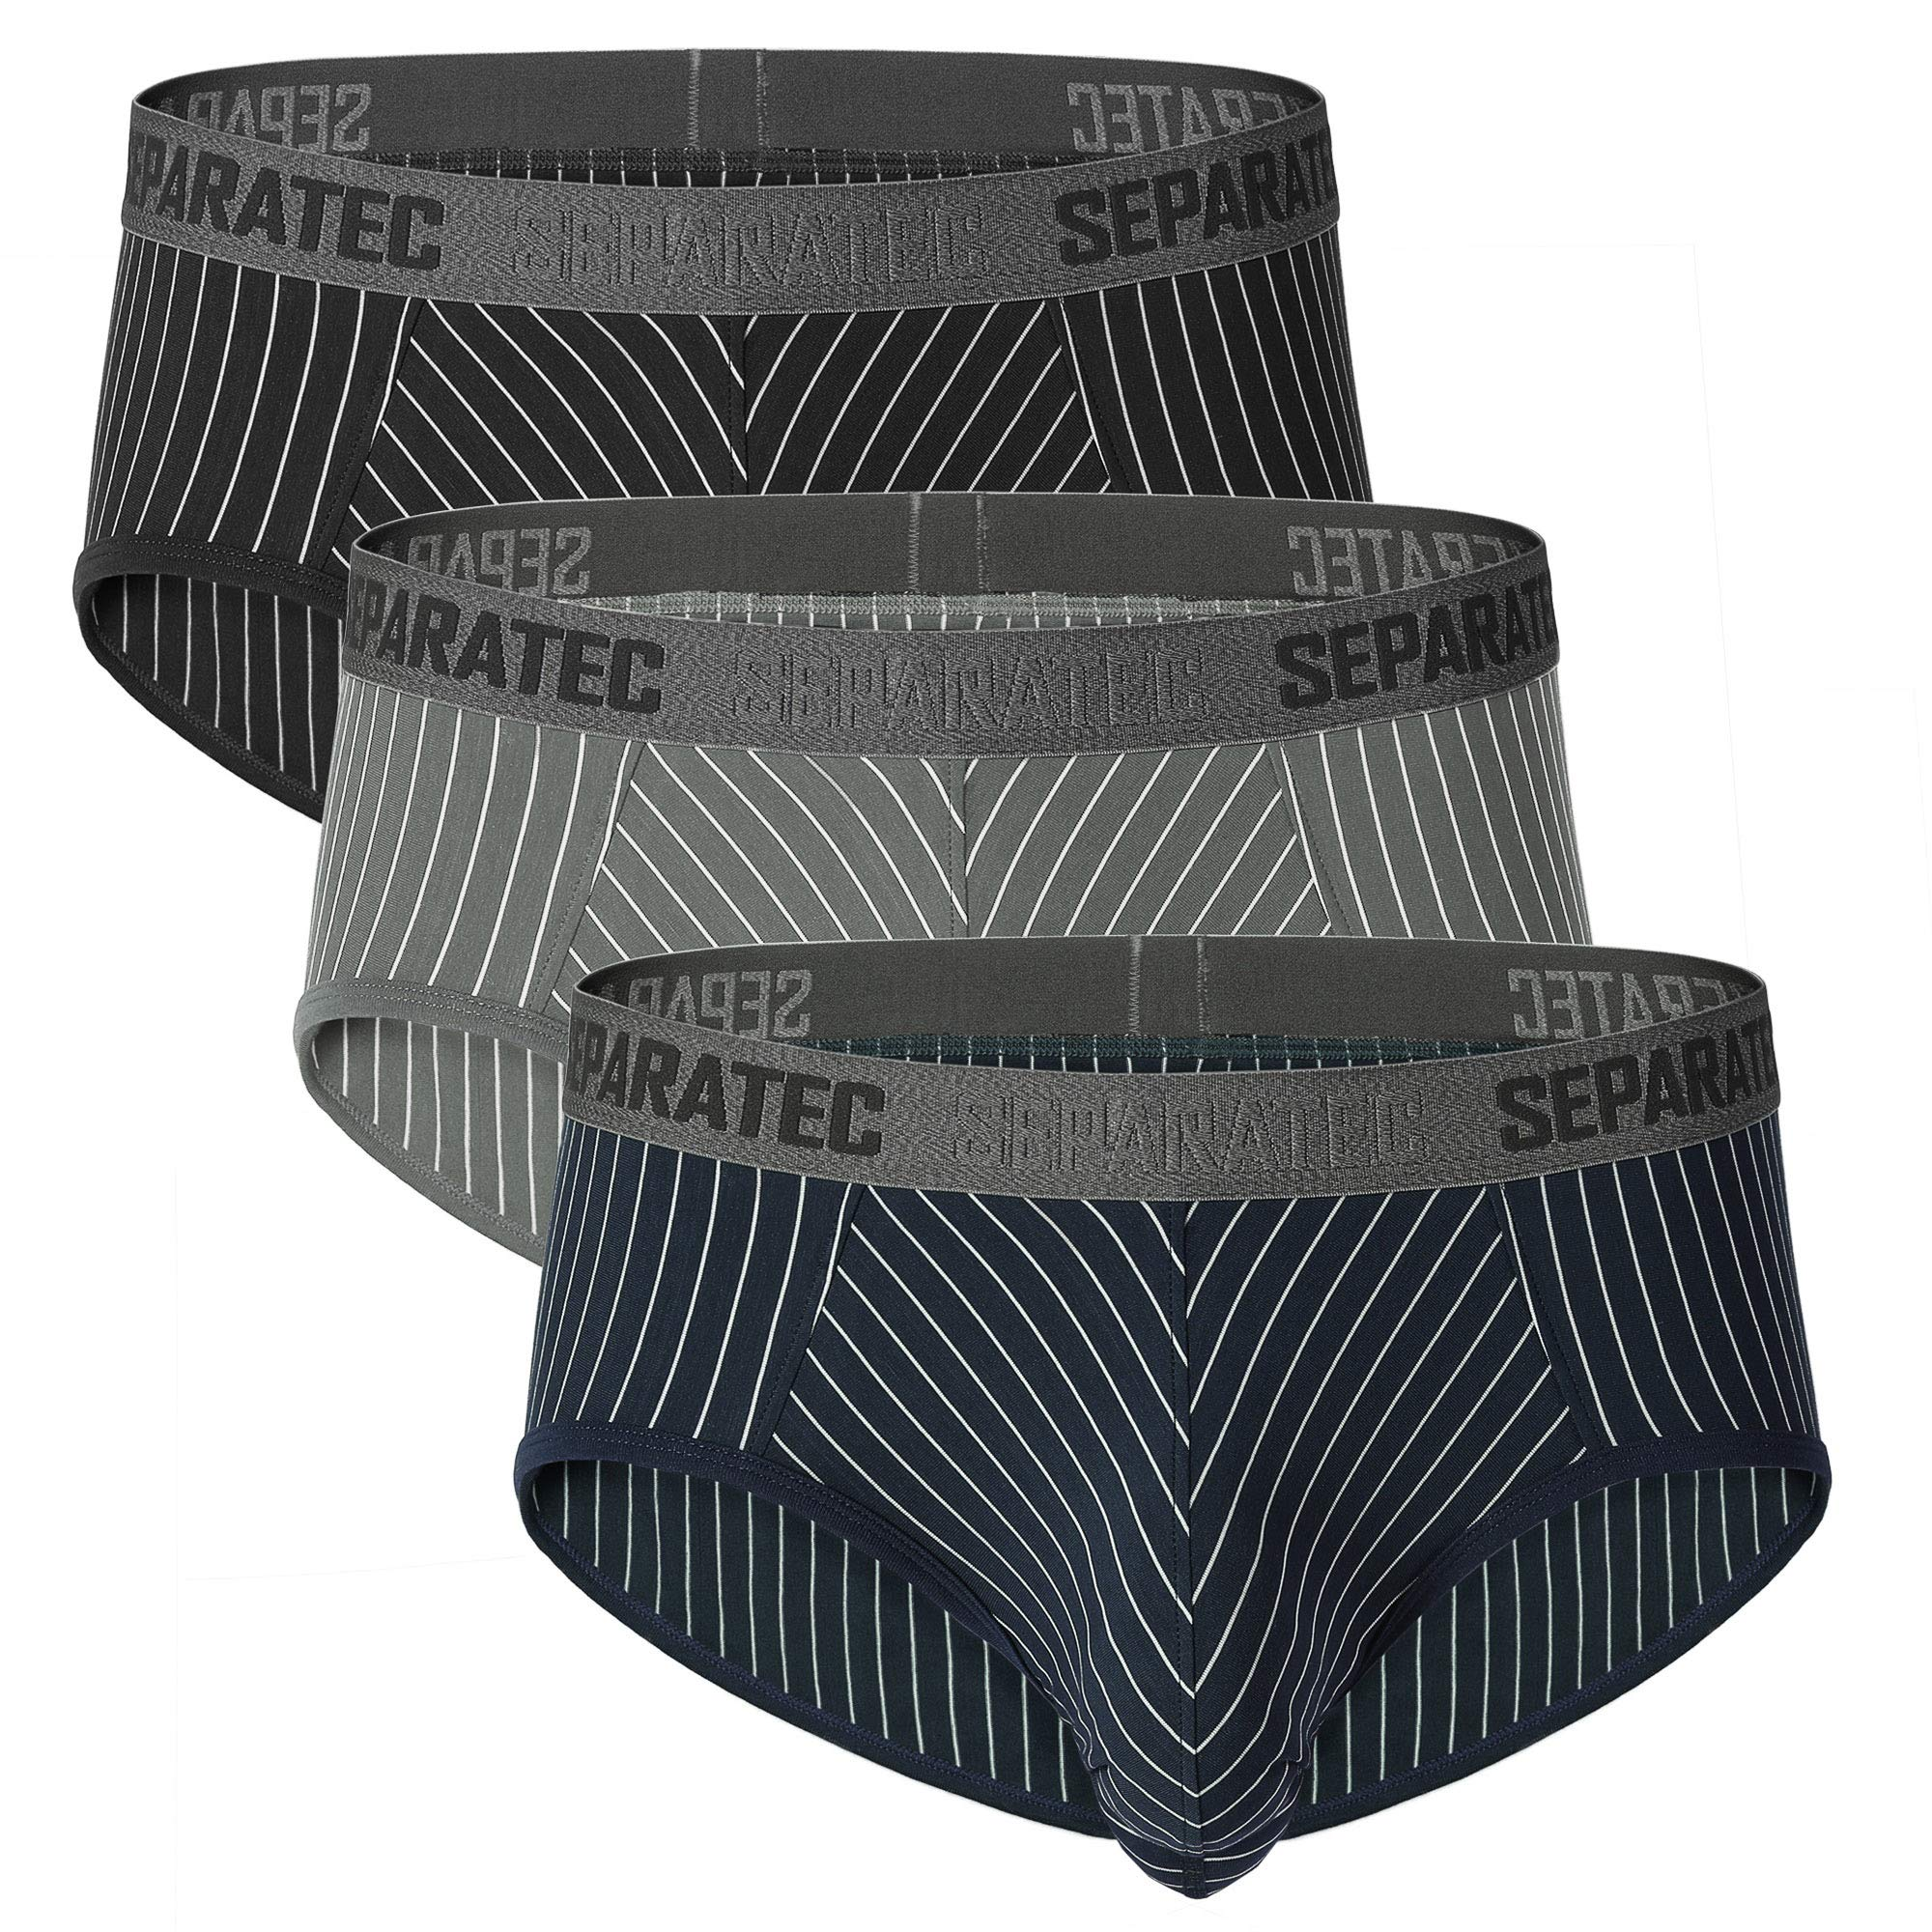 Separatec Men's Underwear Stylish Striped Comfort Soft Cotton Trunks 3 Pack (Black/Gray/Navy Blue, M) by Separatec